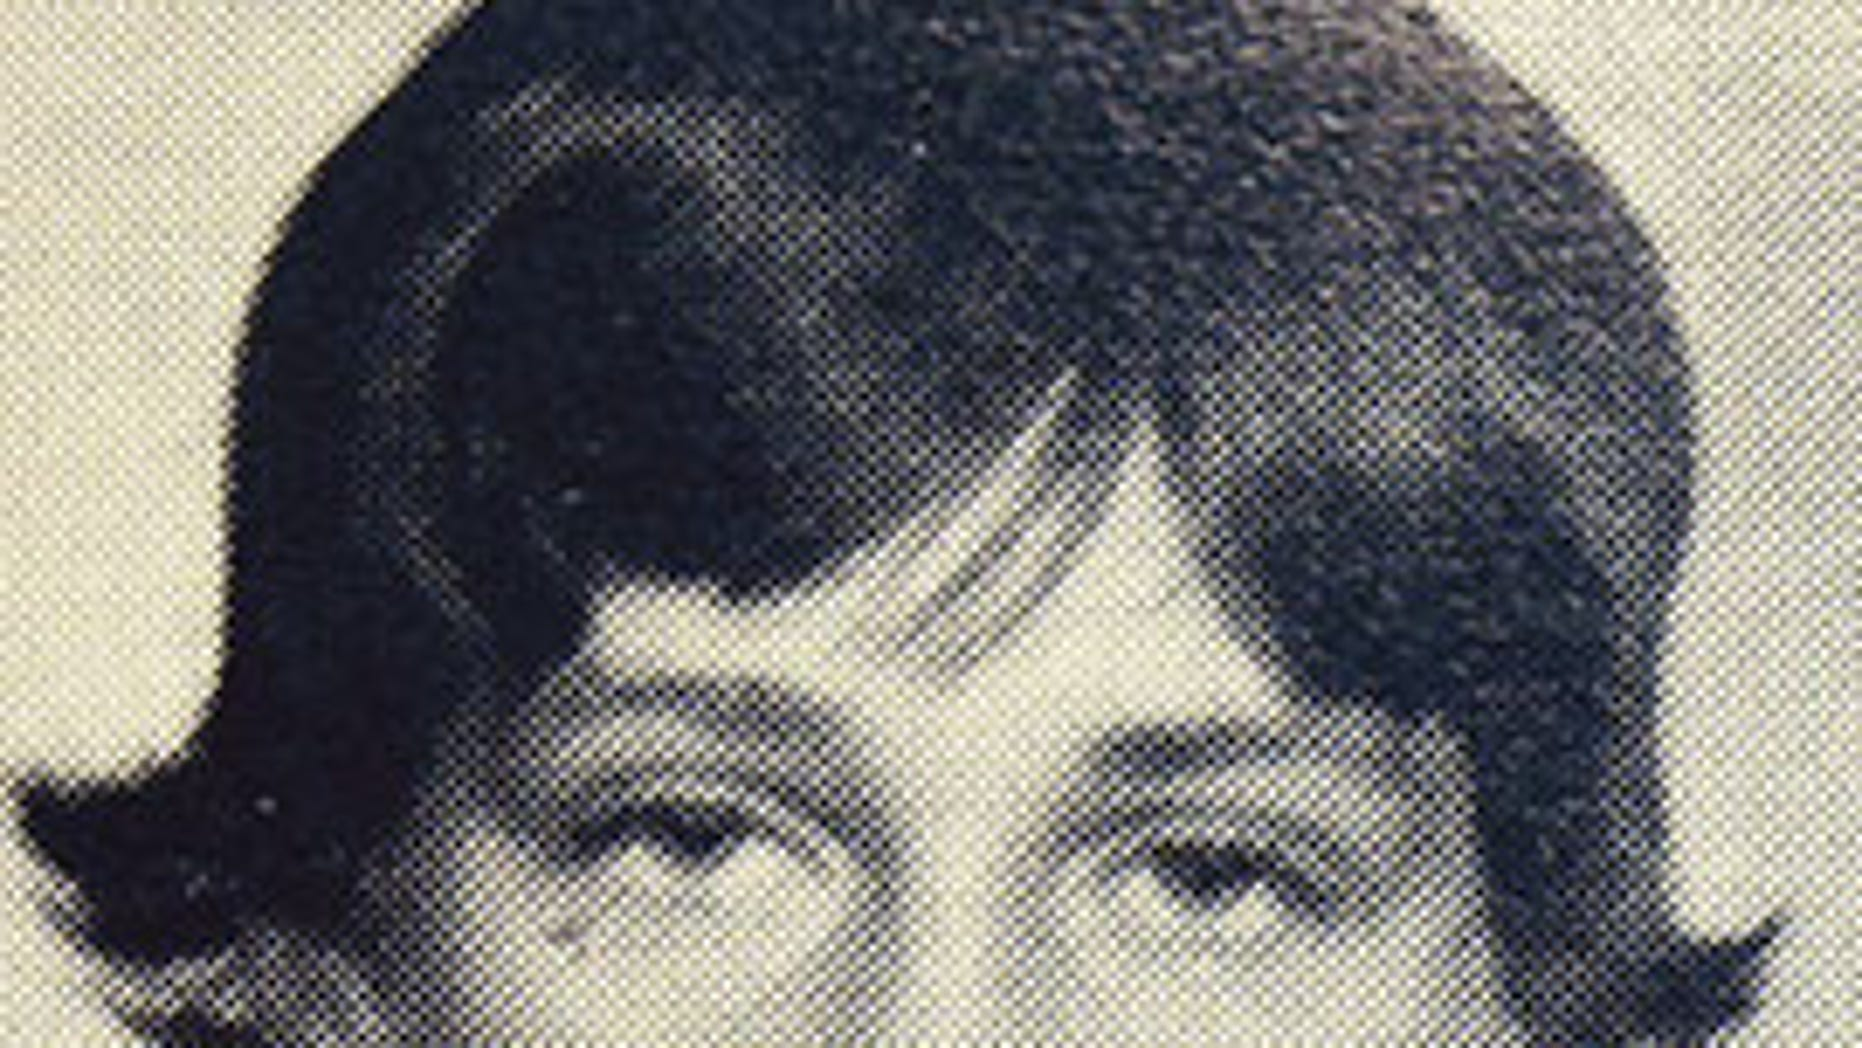 Andrew Jackson Greer disappeared from his Michigan high school in 1979.